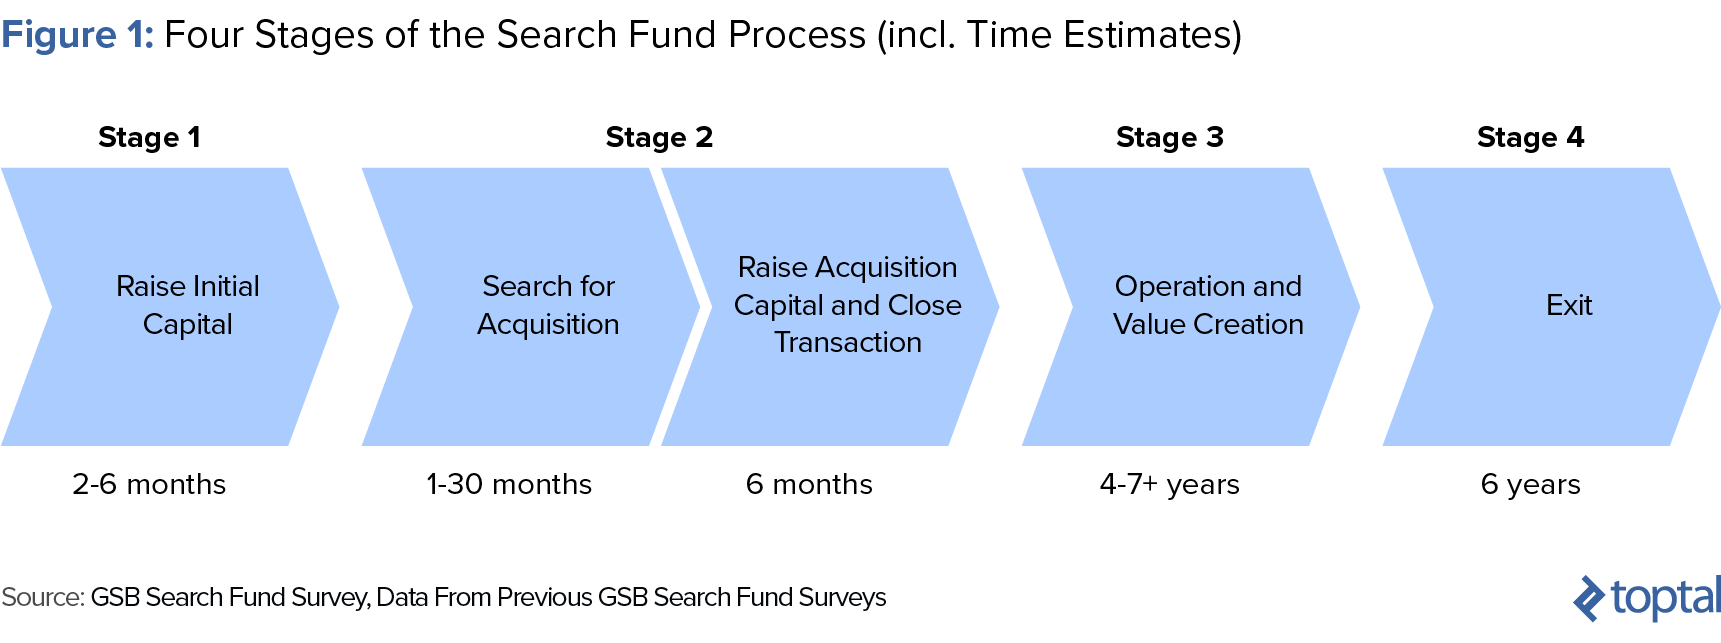 Figure 1: Four Stages of the Search Fund Process, Including Time Estimates